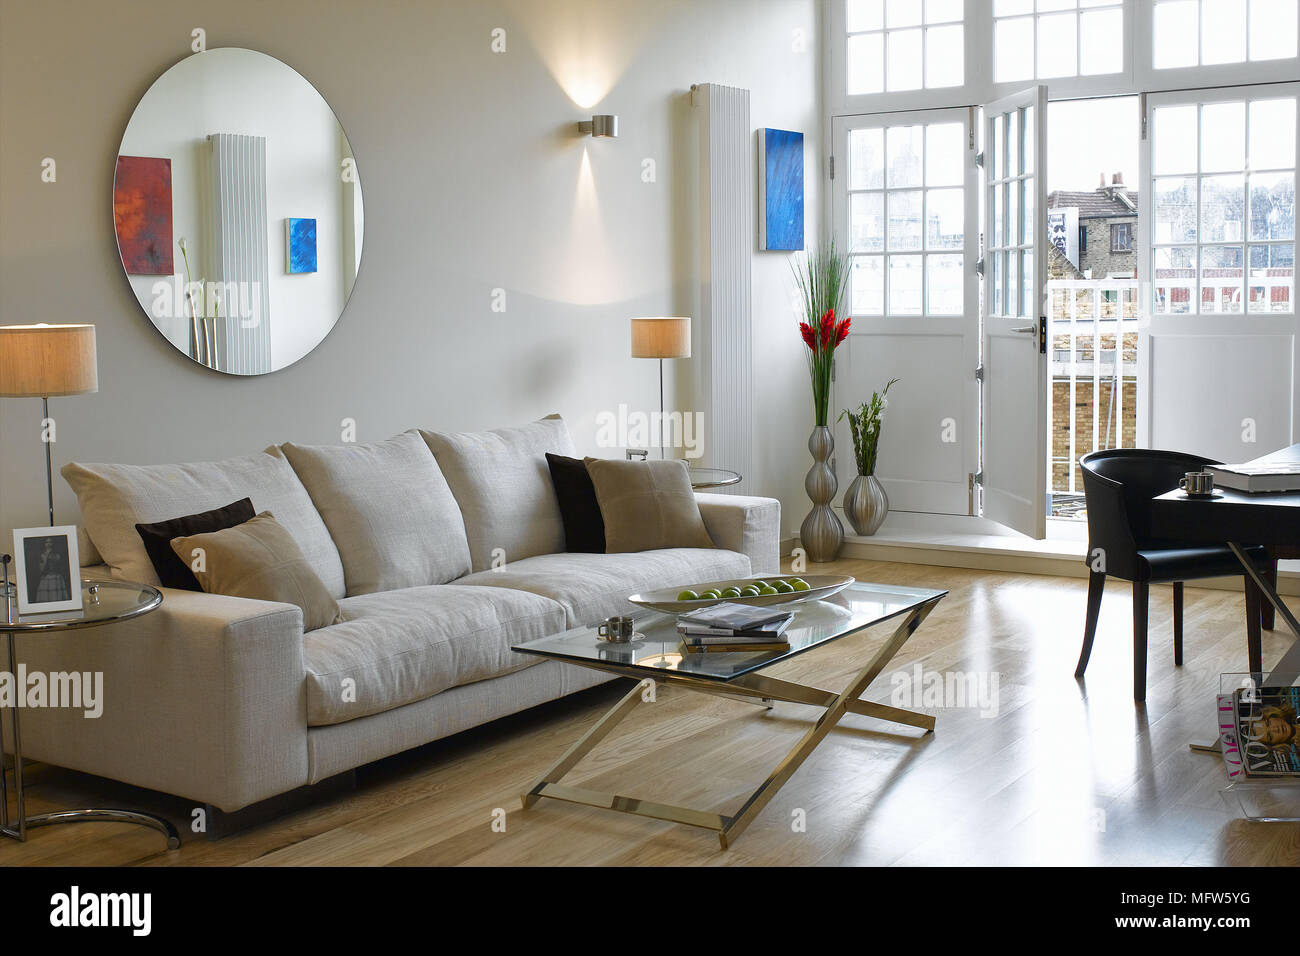 Circular Mirror Above A Sofa In A Living Room With An Open Terrace